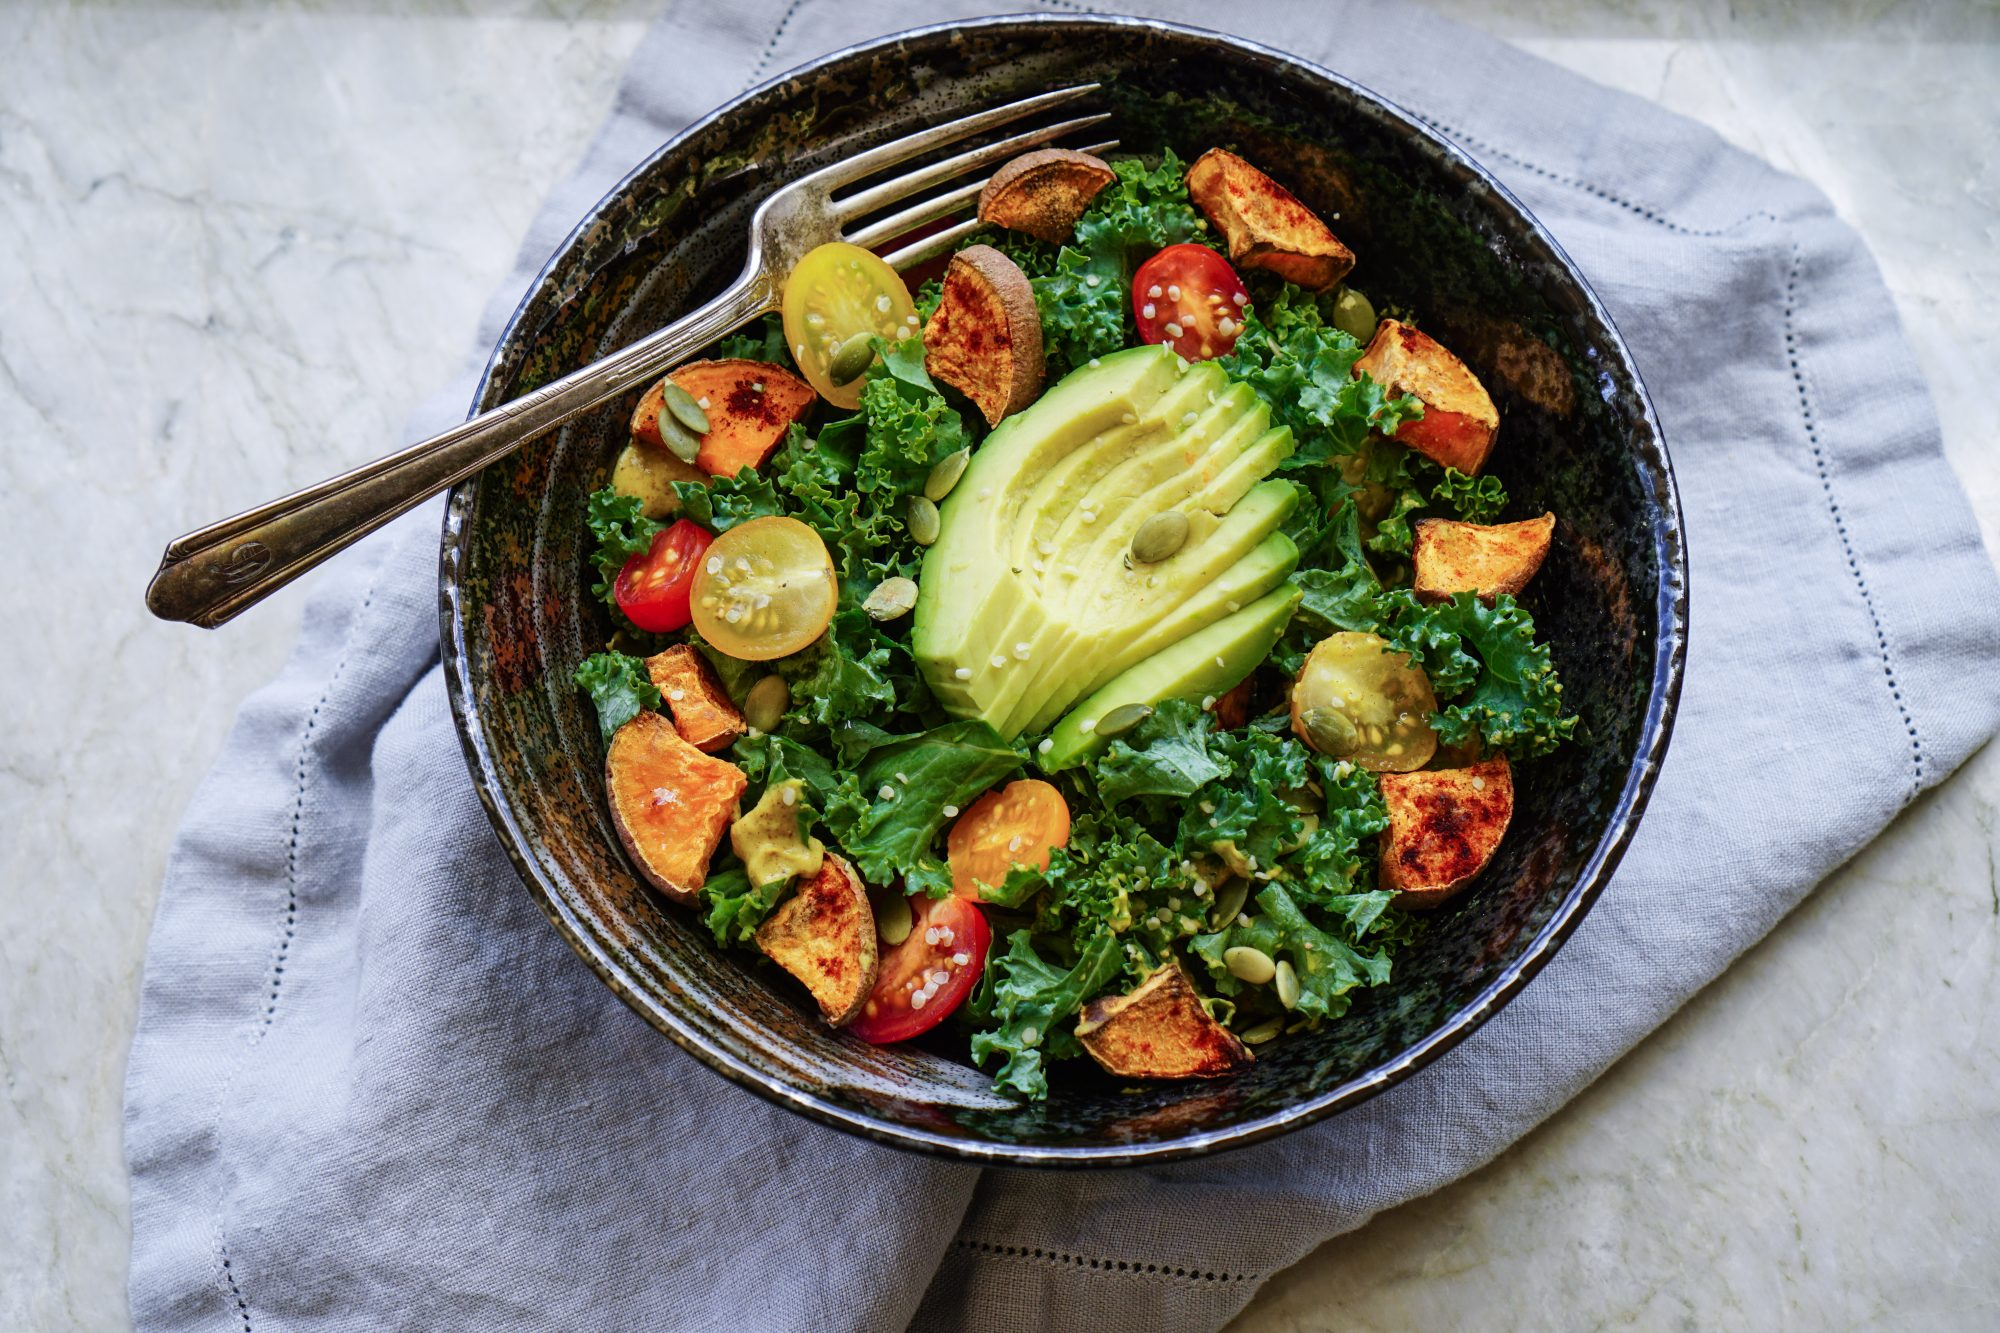 Kale Salad with Roasted Yams and Avocado